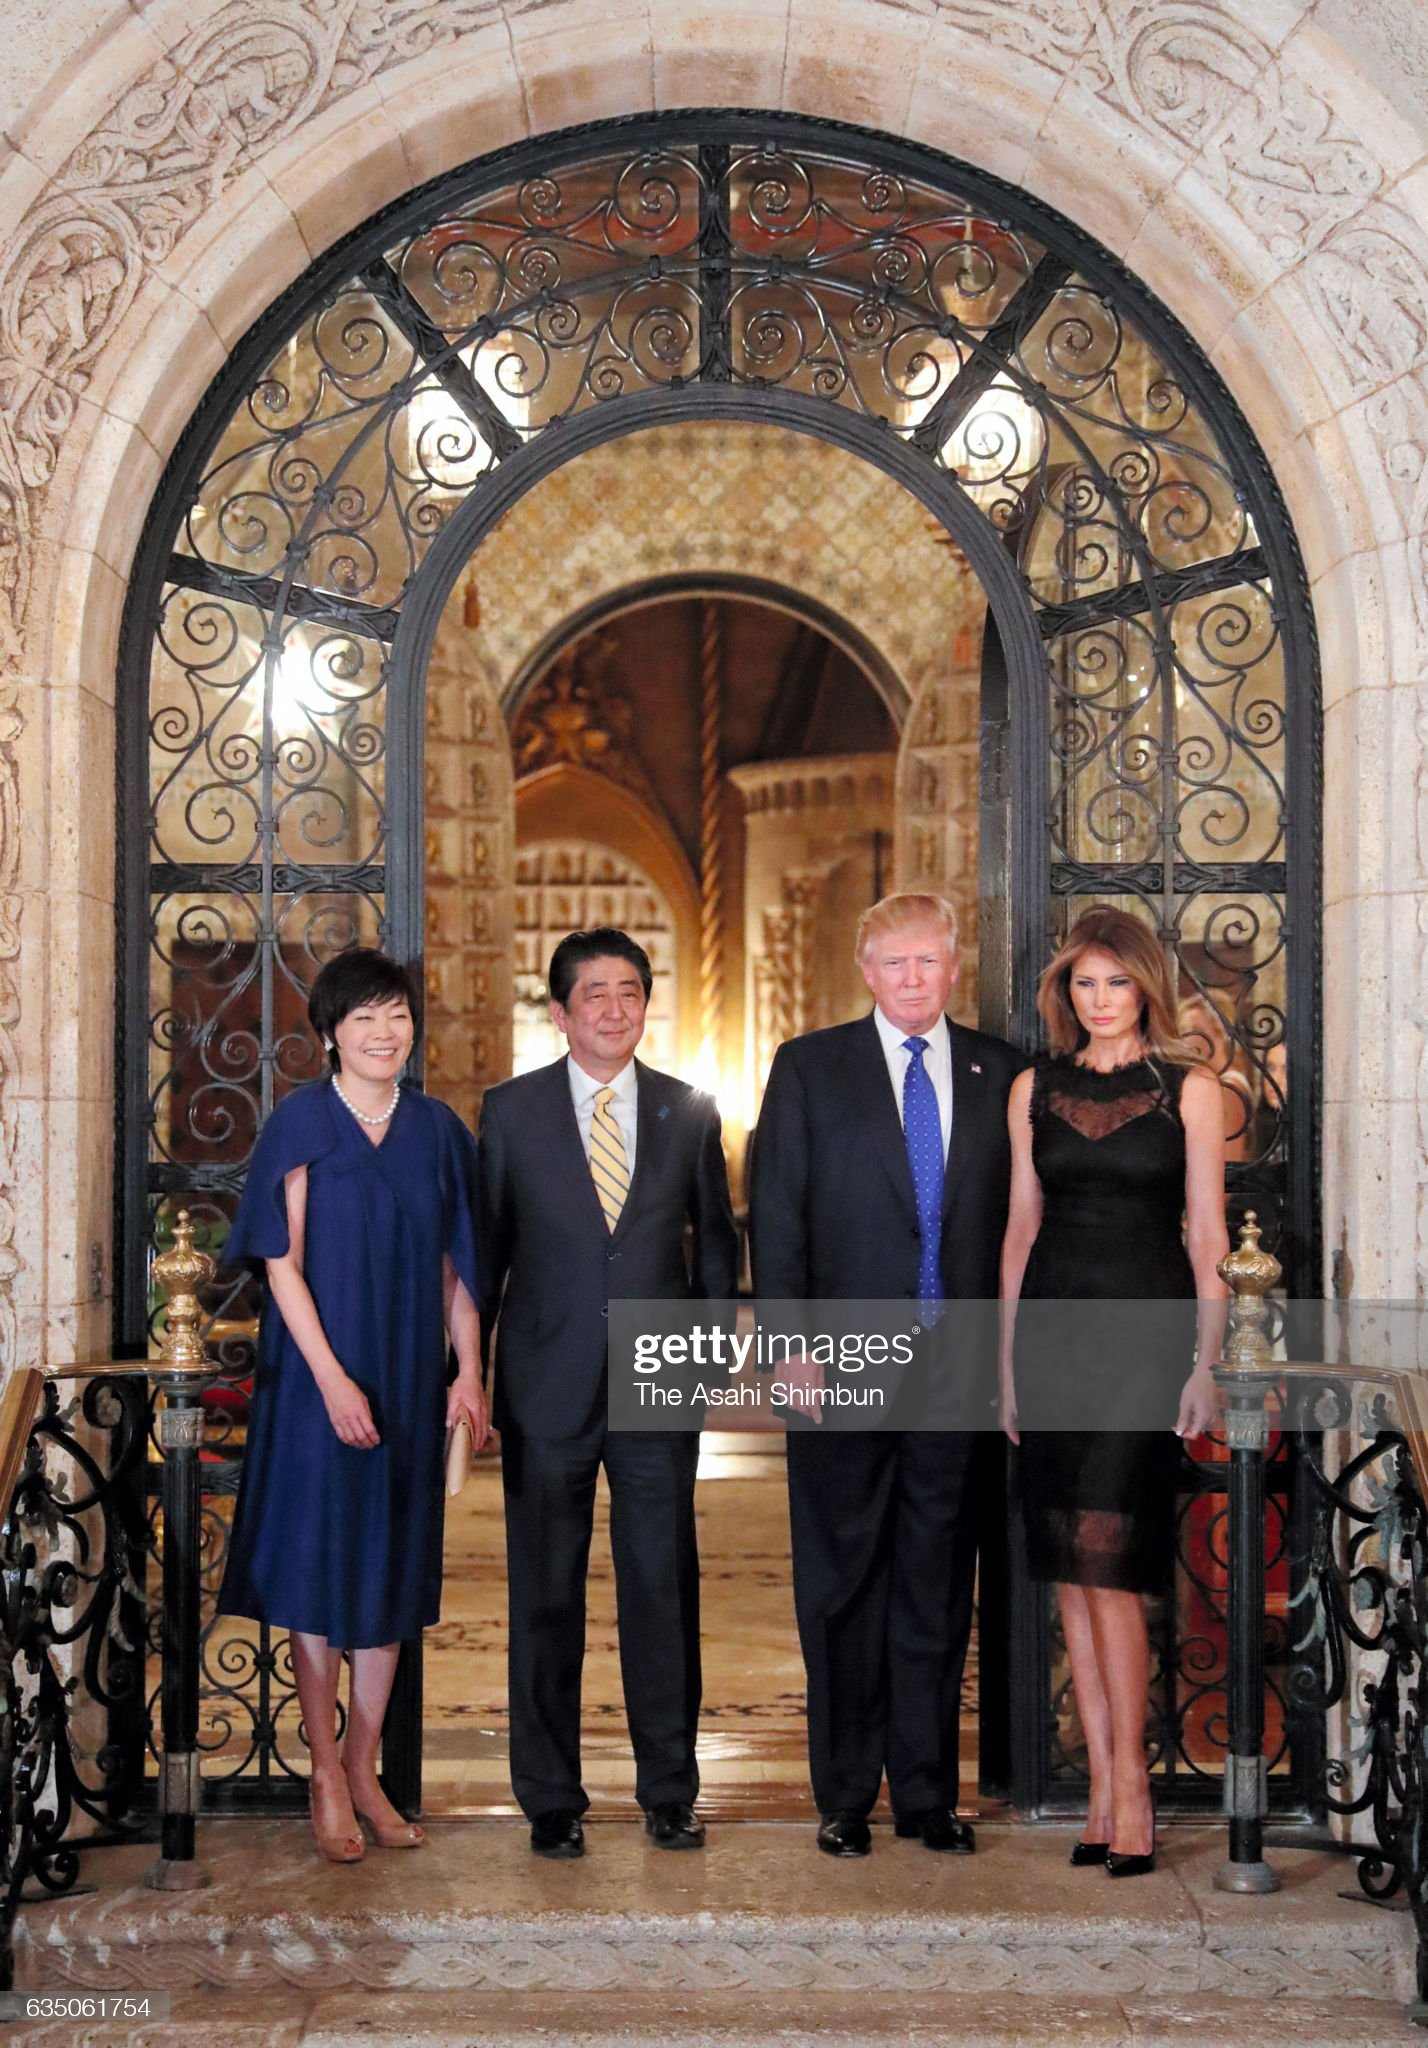 ¿Cuánto mide Donald Trump? - Estatura real y peso - Real height and weight - Página 6 Japanese-prime-minister-shinzo-abe-his-wife-akie-us-president-donald-picture-id635061754?s=2048x2048